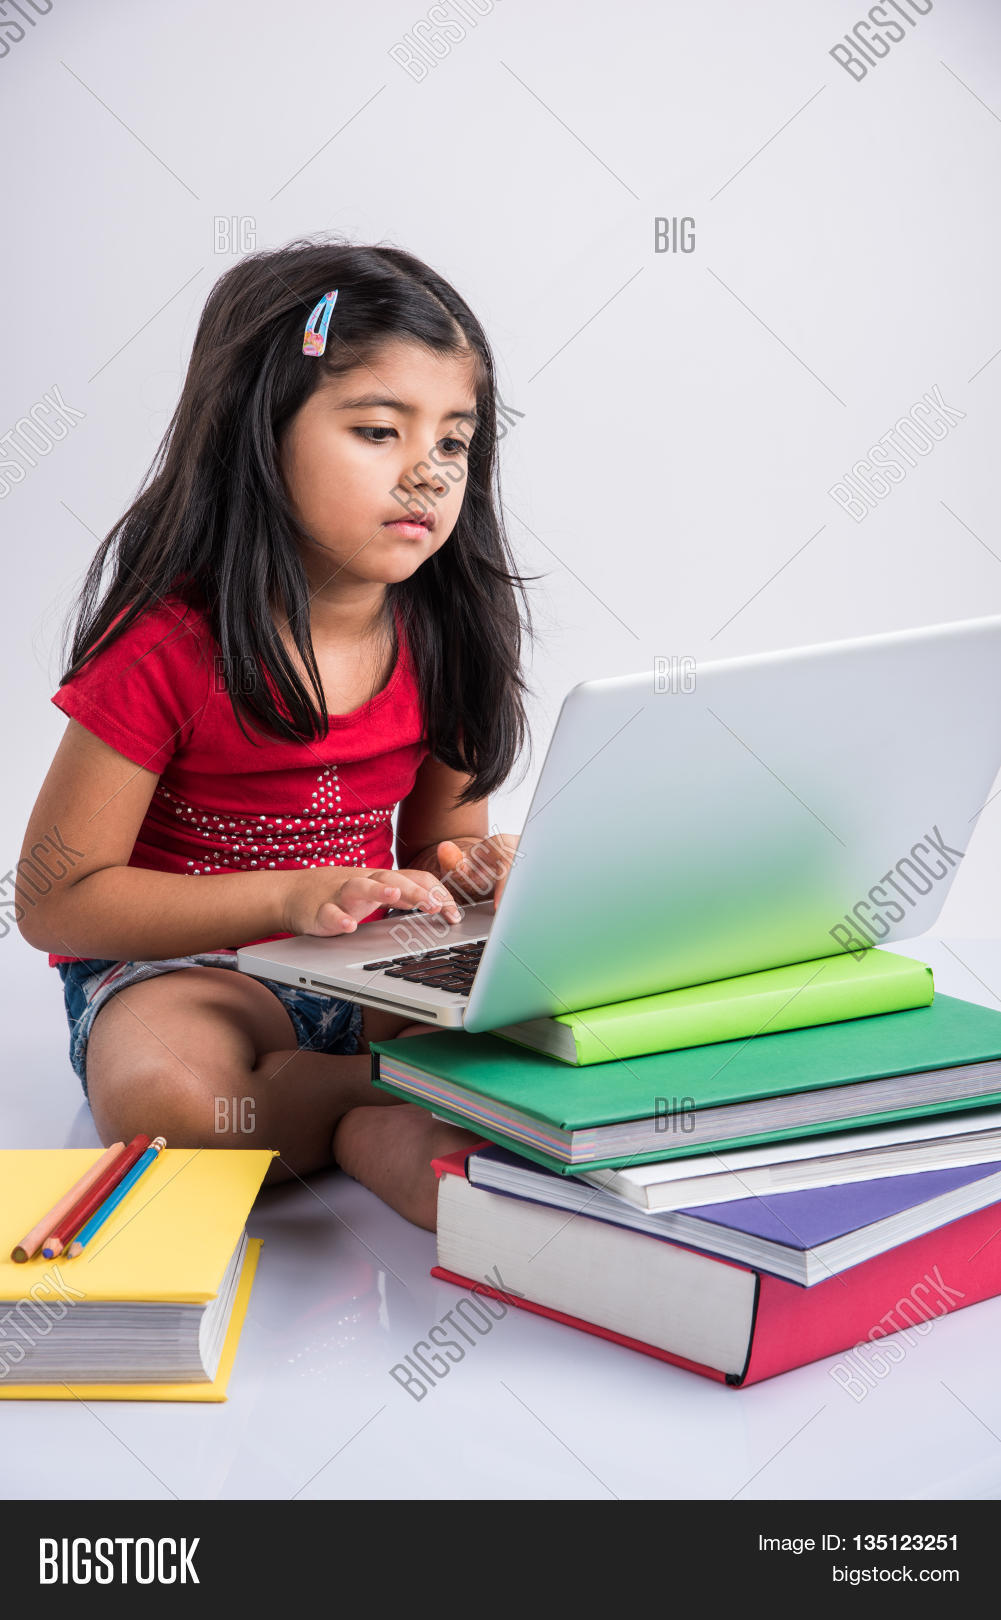 Cute Little Indian Girl Studying On Image  Photo  Bigstock-4466